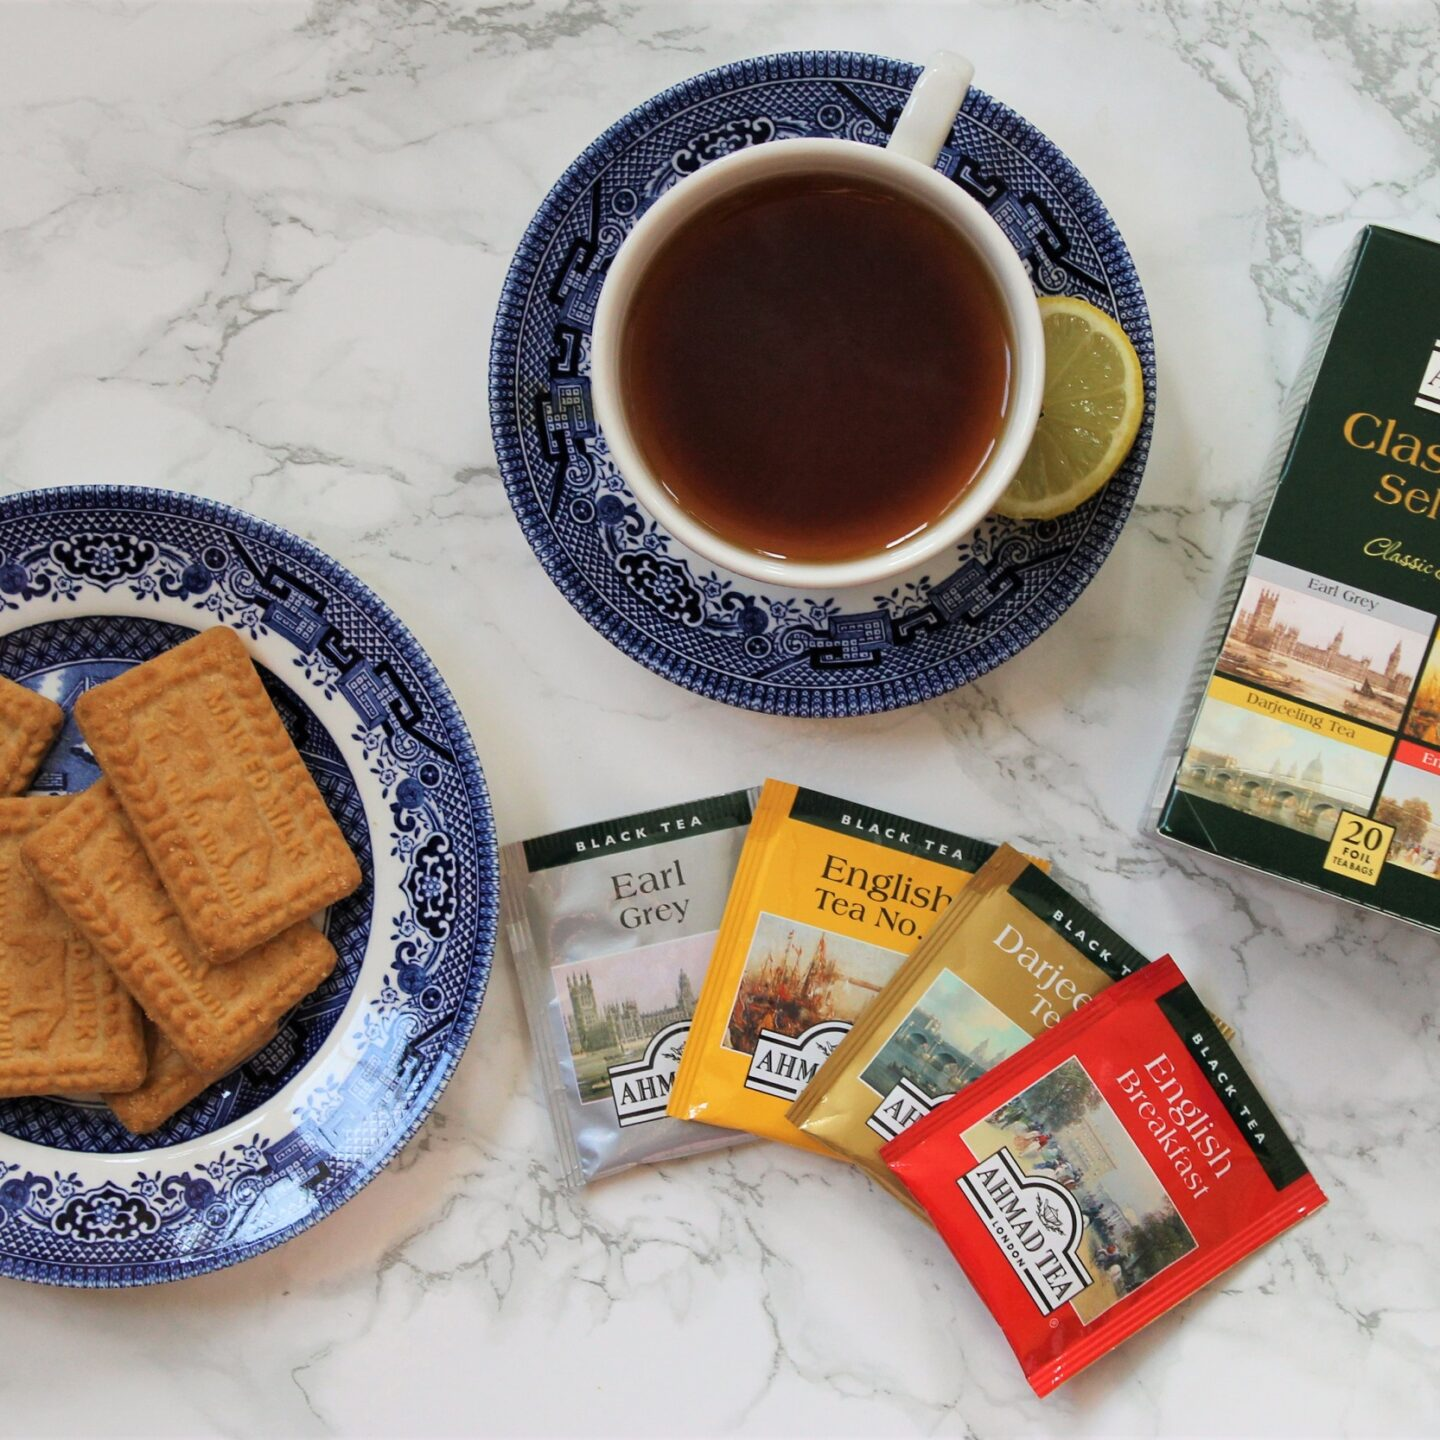 Ahmad Classic Tea Selection Box Review